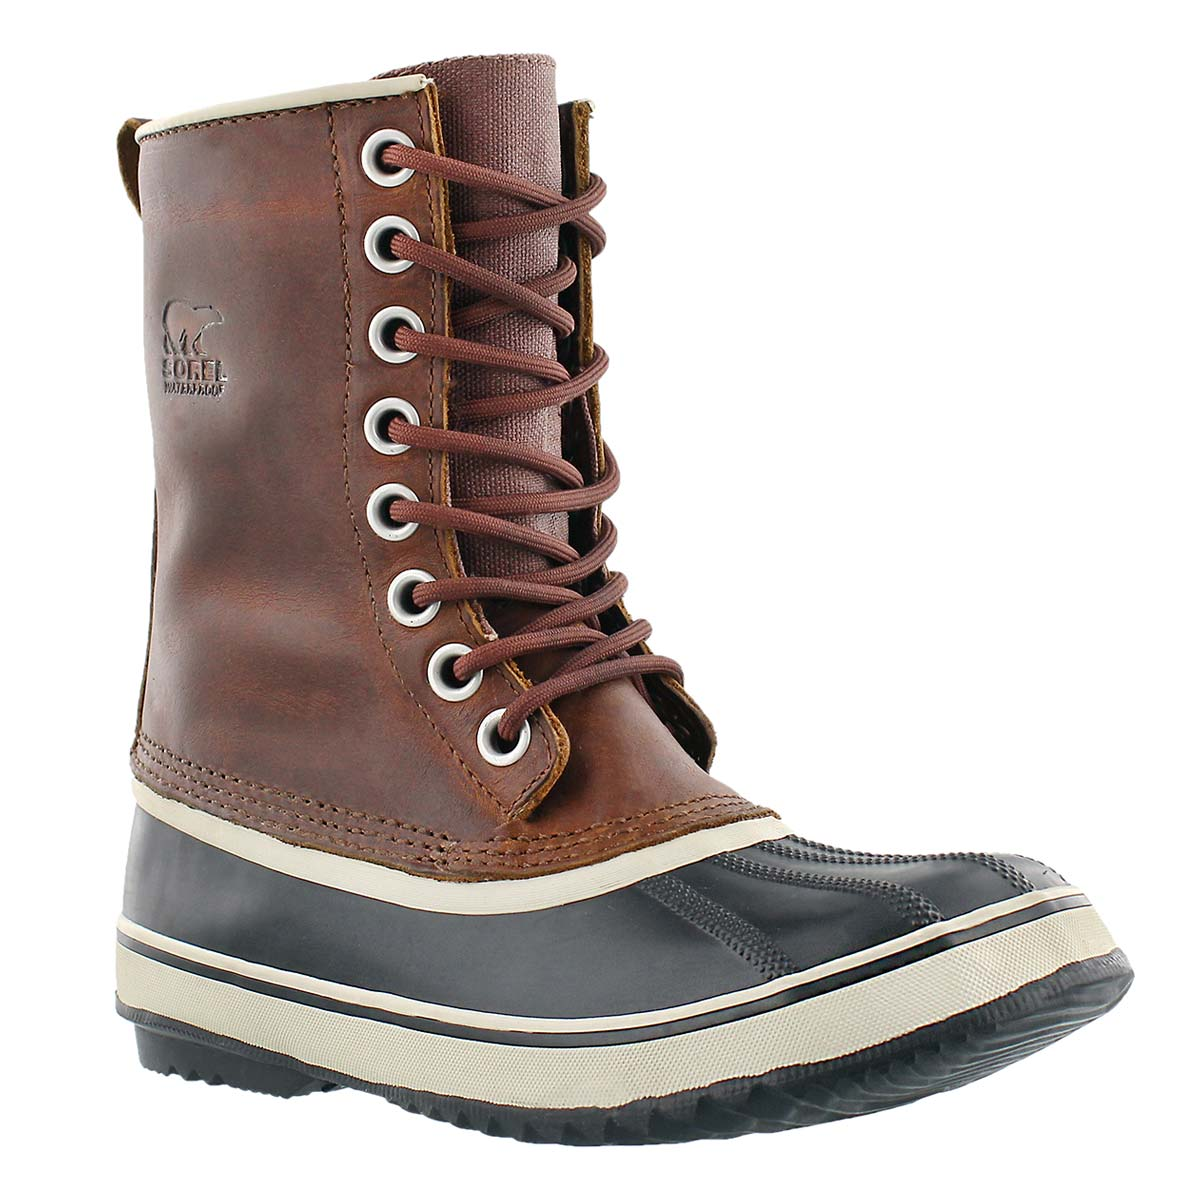 Lds 1964 Premium LTR brown winter boot